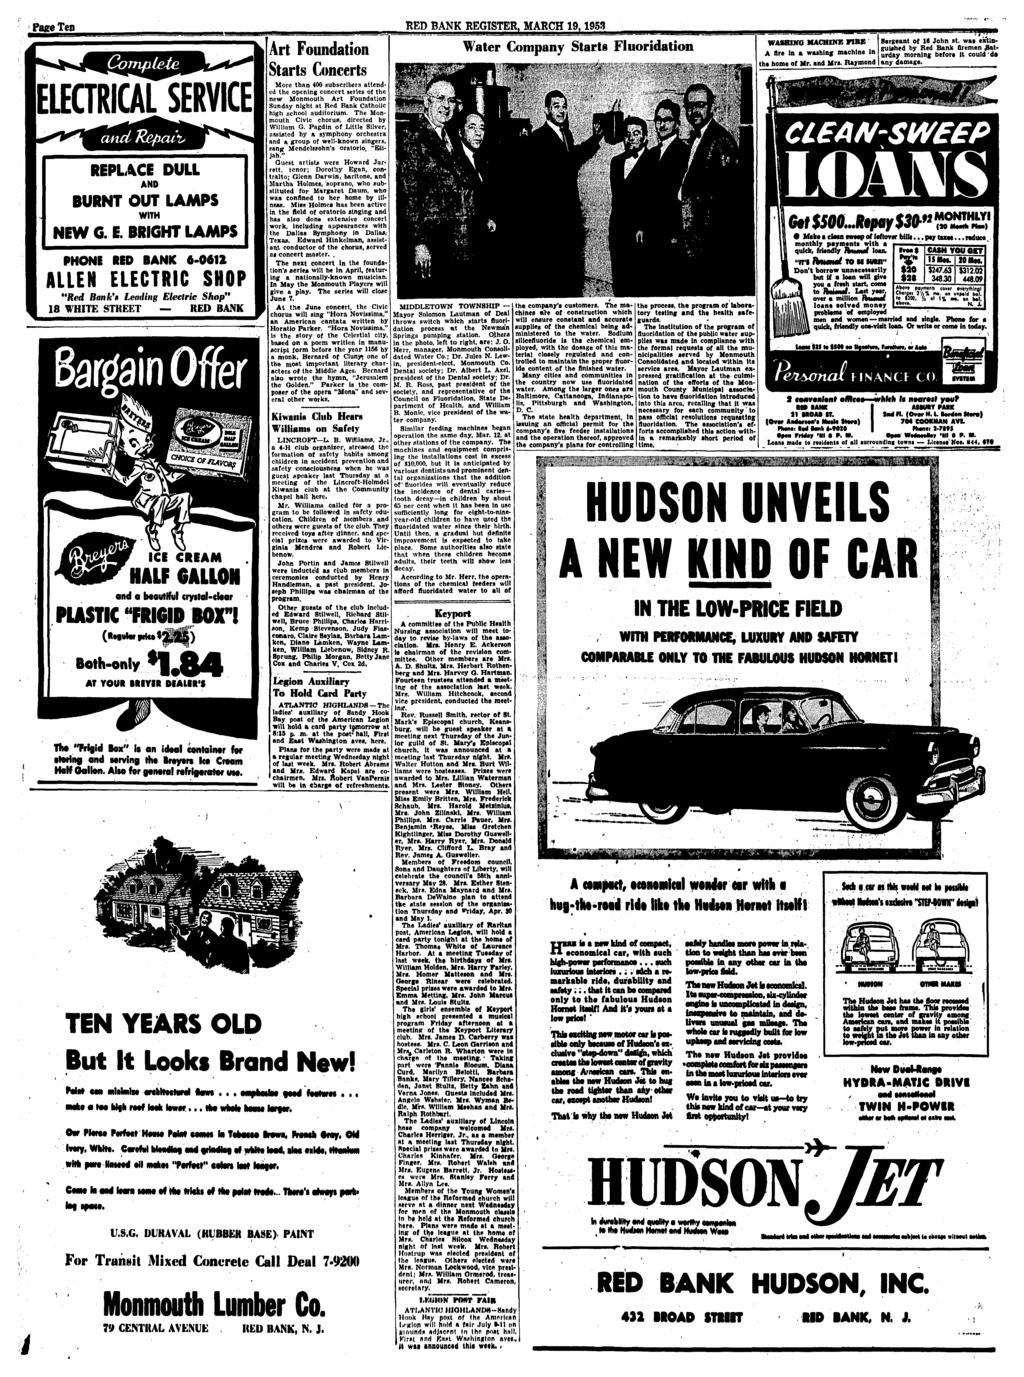 Red Bank Register Church Officers Installed Rv Wtutr W Felqner Glove Compartment Wiring Diagram For 1953 Studebaker Champion And Commander Pace Ten March 19